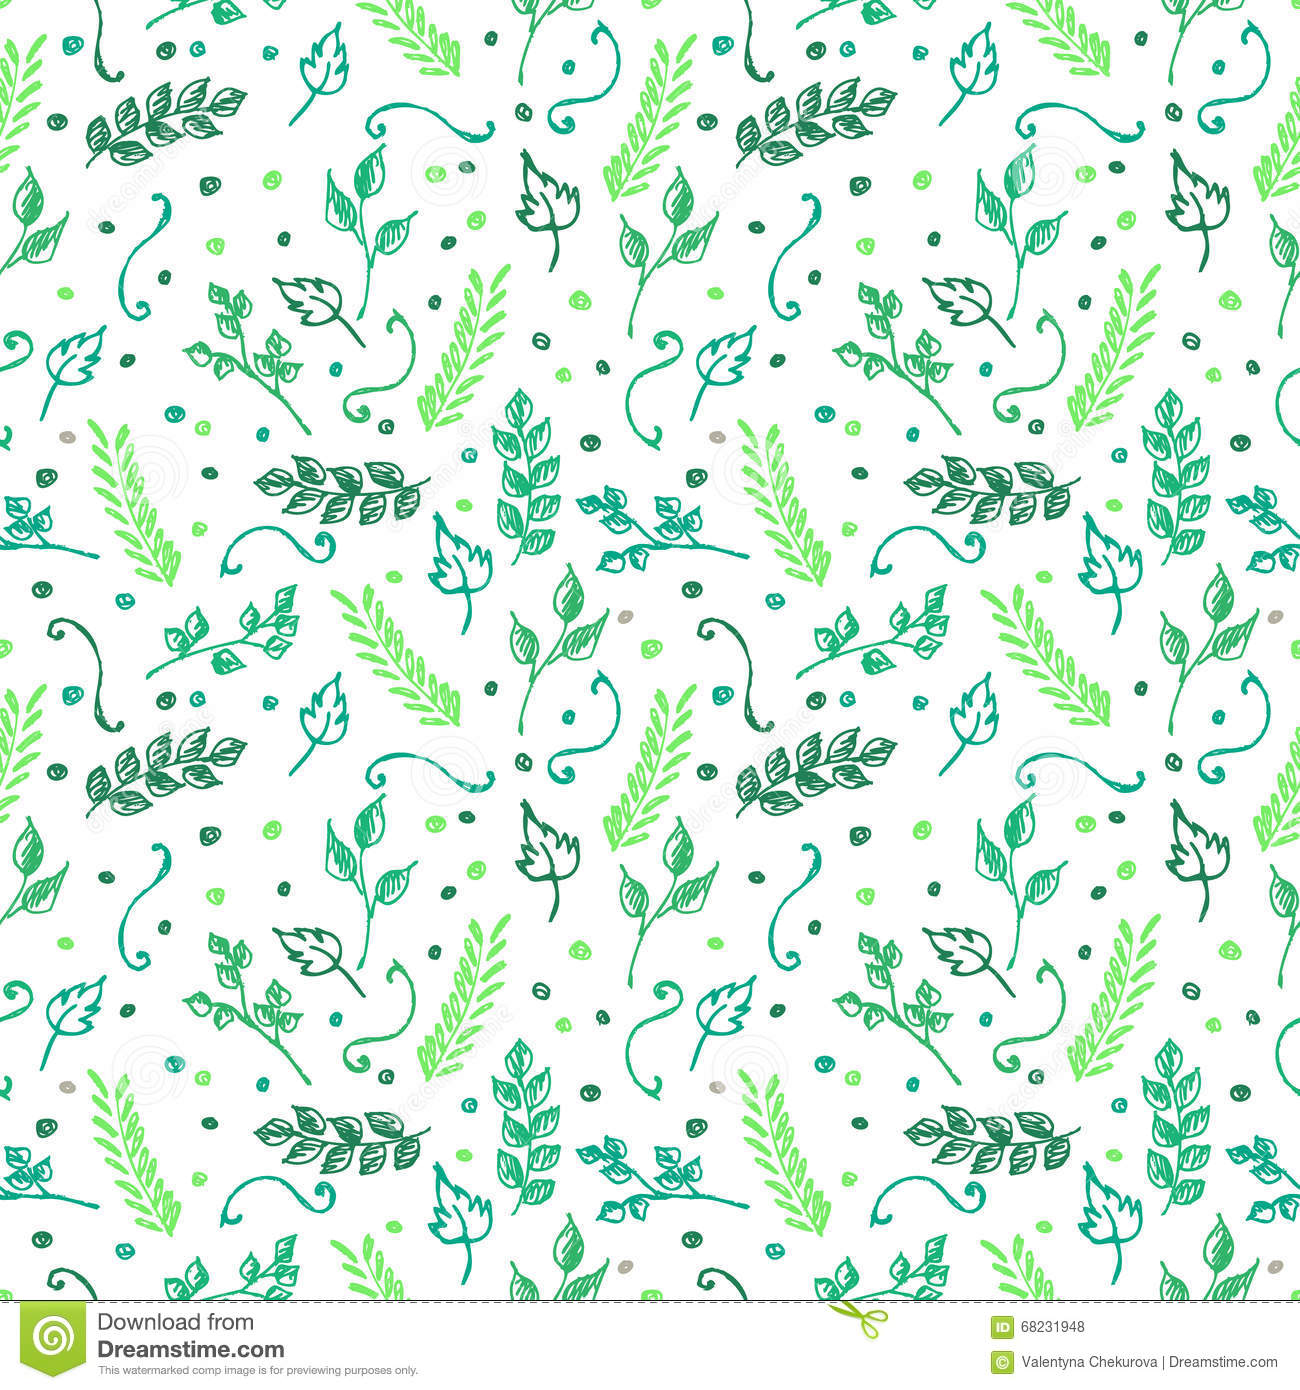 Seamless vector pattern, background with colorful branches and leaves on the white backdrop.